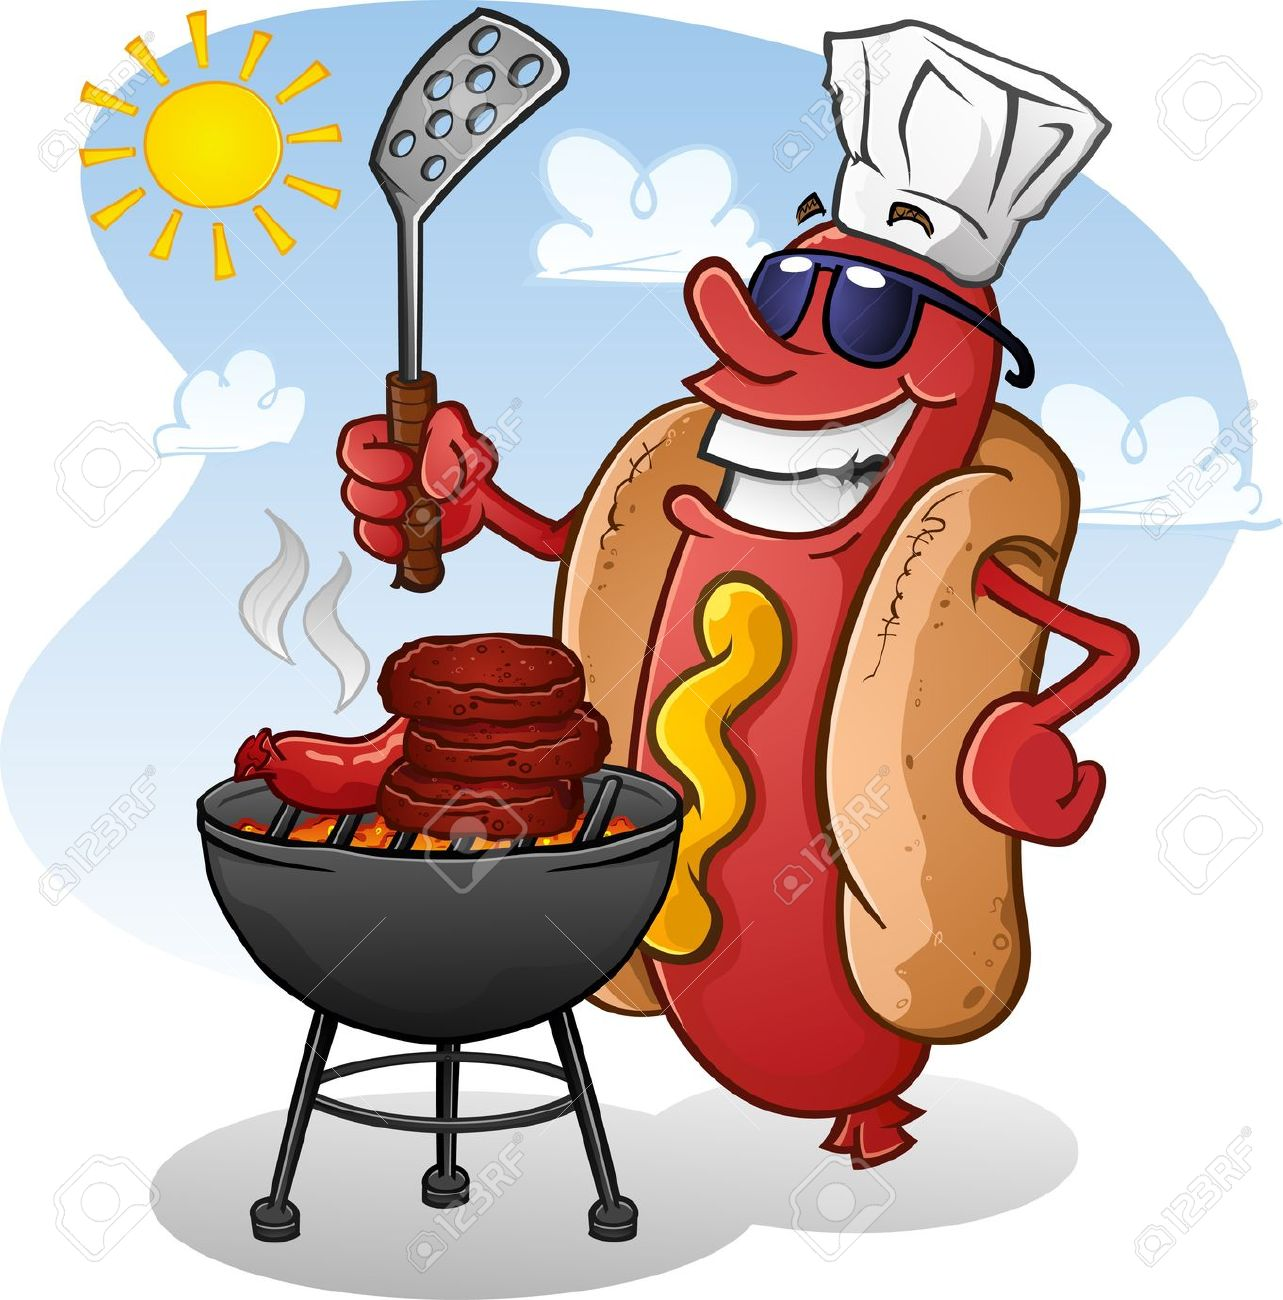 Grilling clipart. Hot dogs